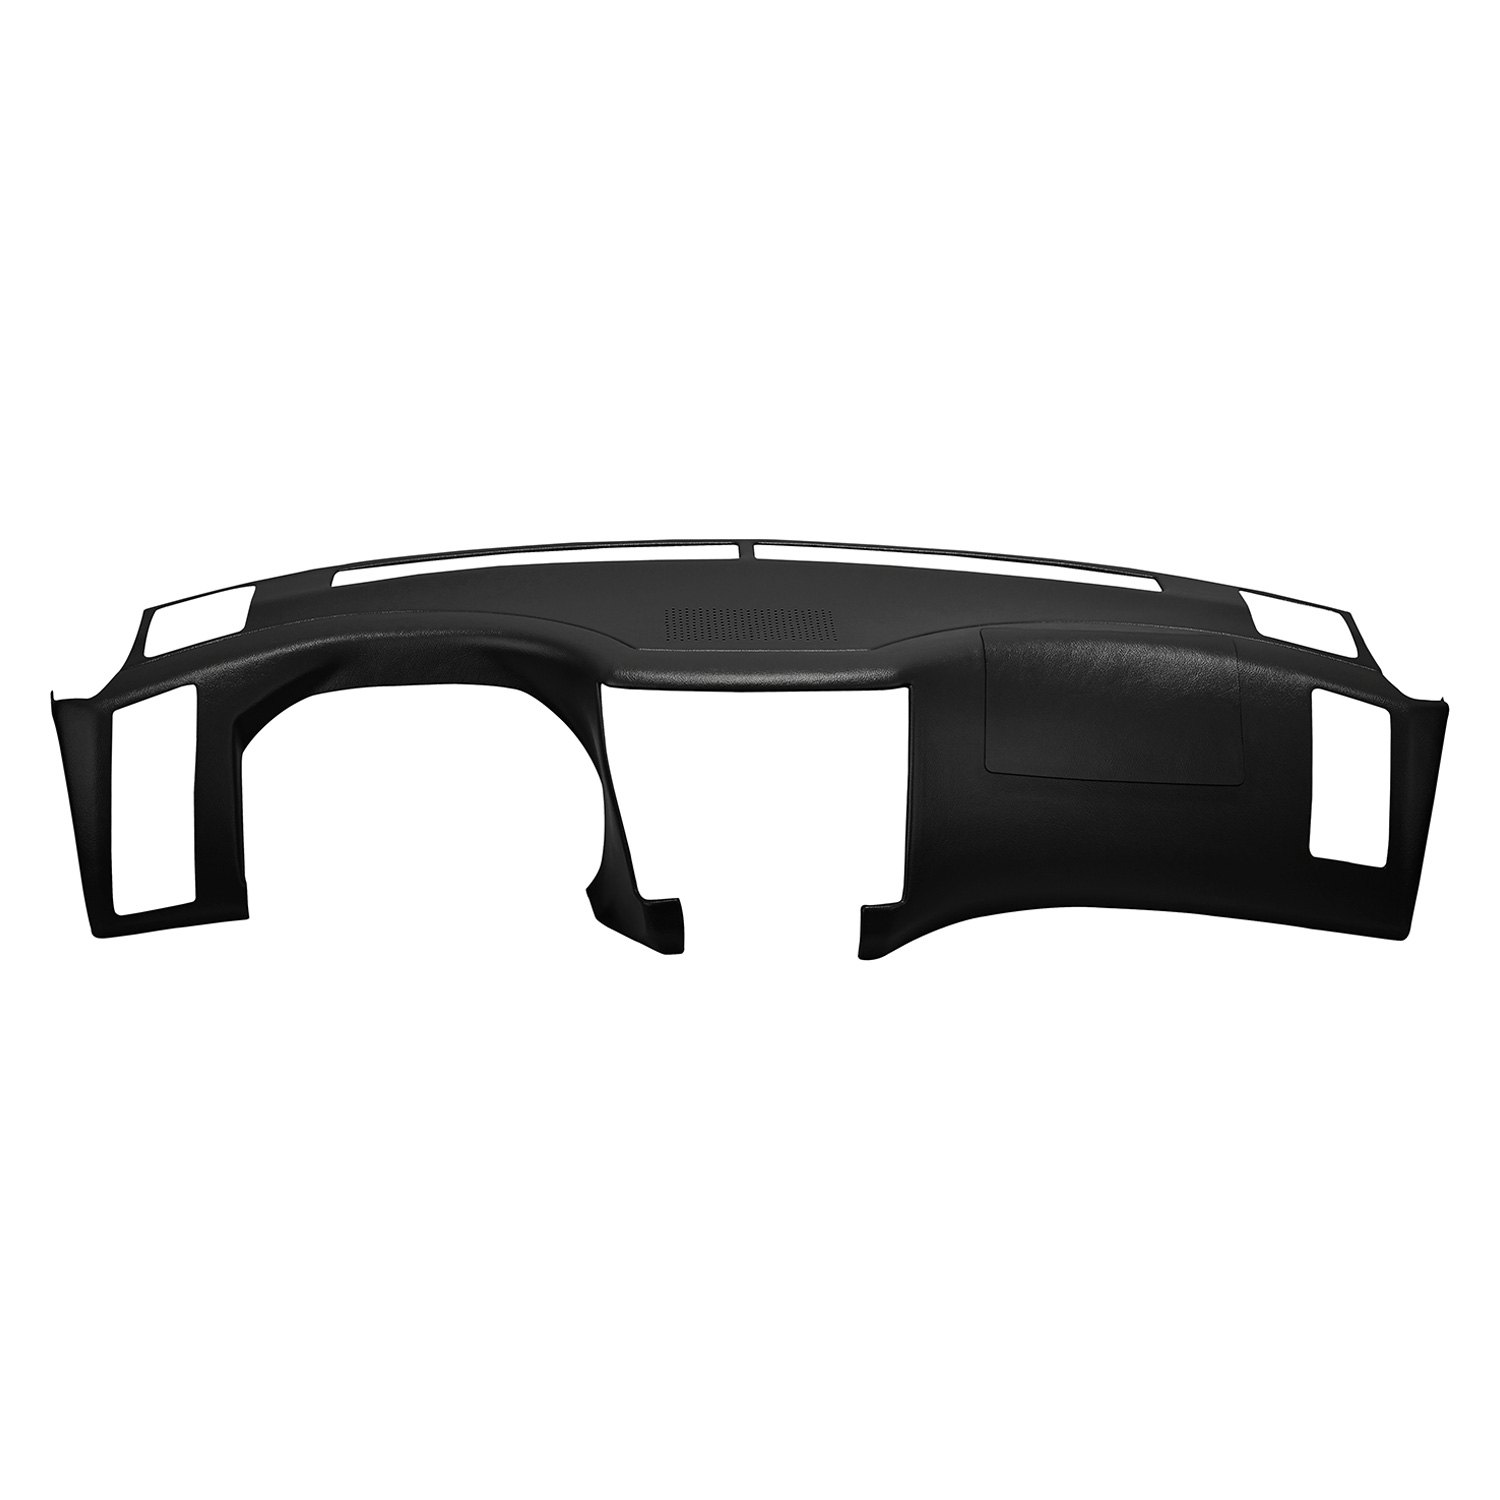 Details about For Infiniti FX35 2003-2005 Coverlay 10-305LL-BLK Black Dash  Cover